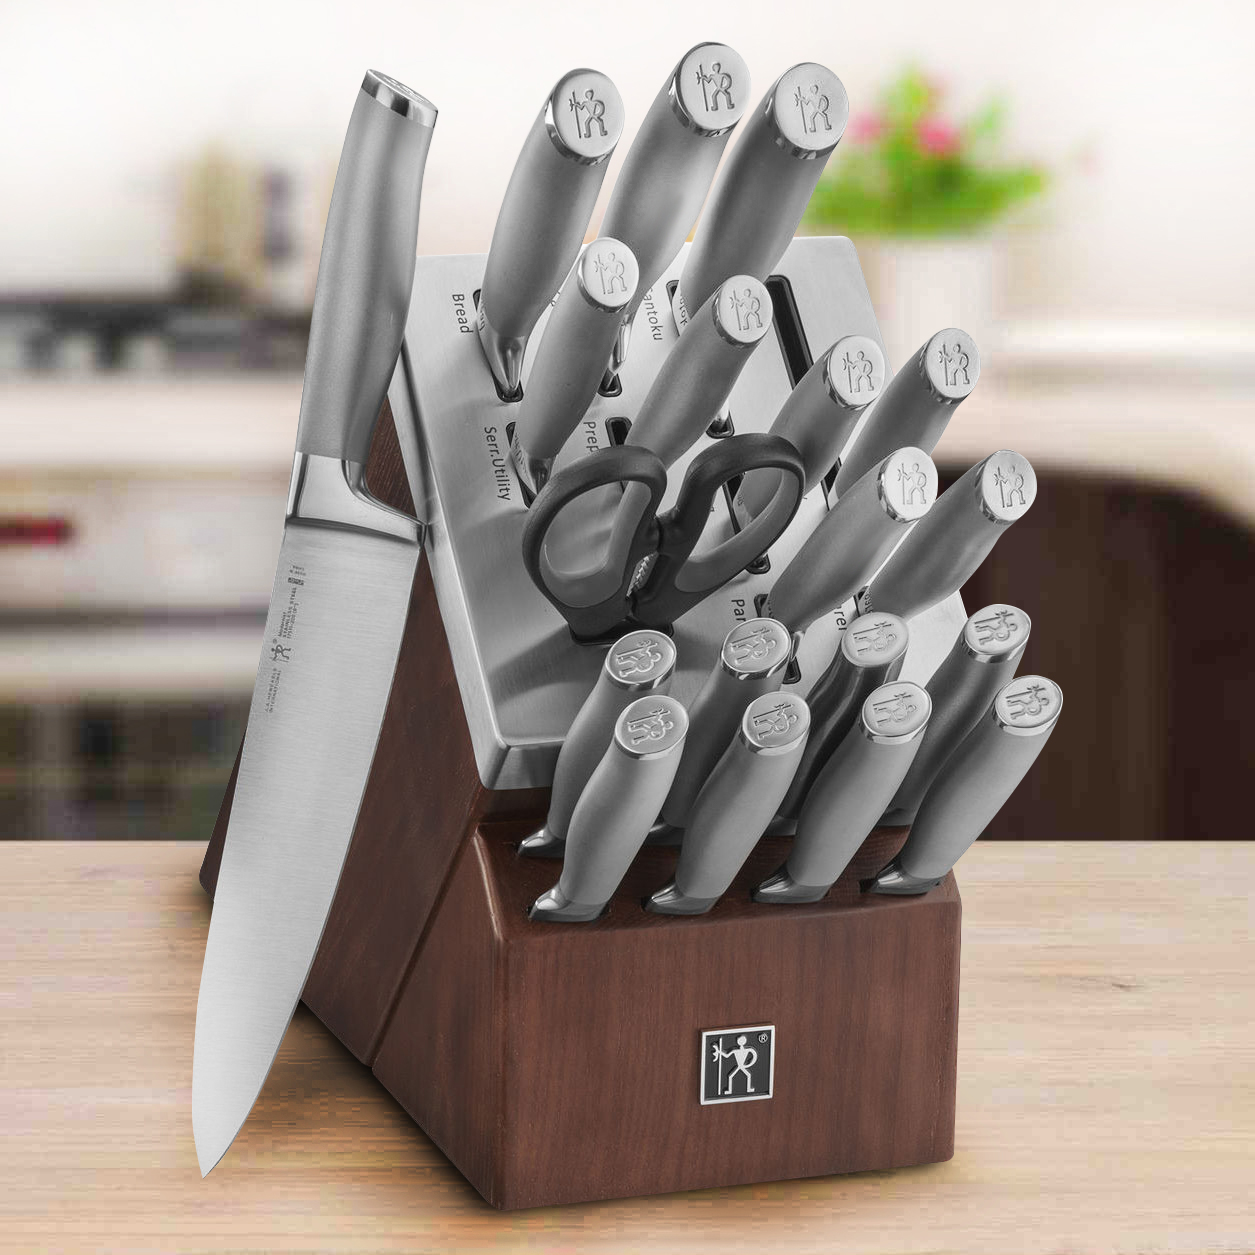 Henckels International Modernist Self Sharpening Knife Set